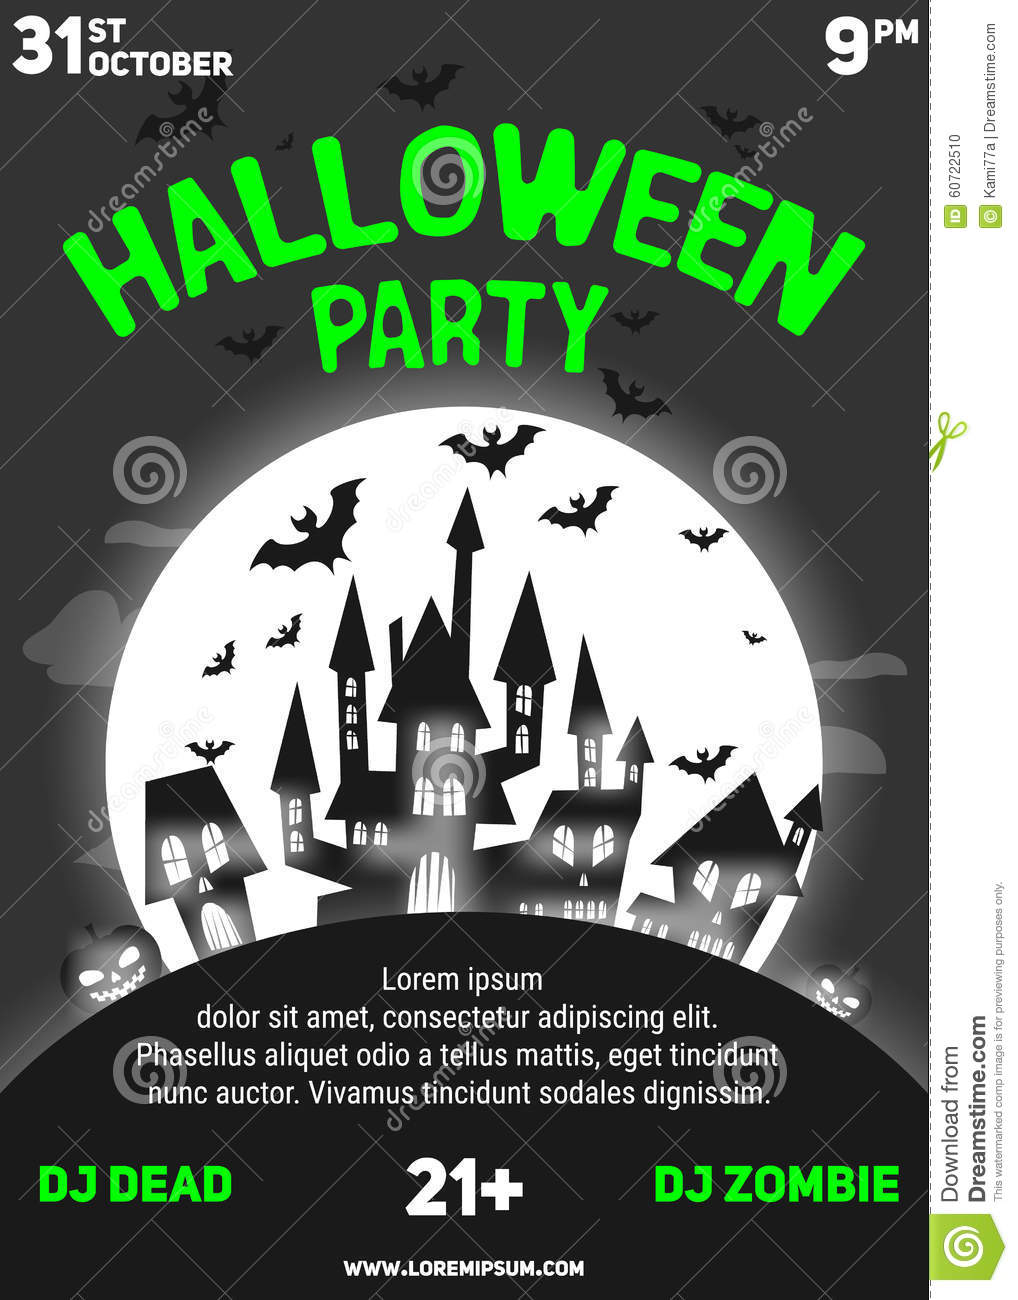 Black And White Flyer Template | Halloween Party Black And White Flyer Template Stock Vector